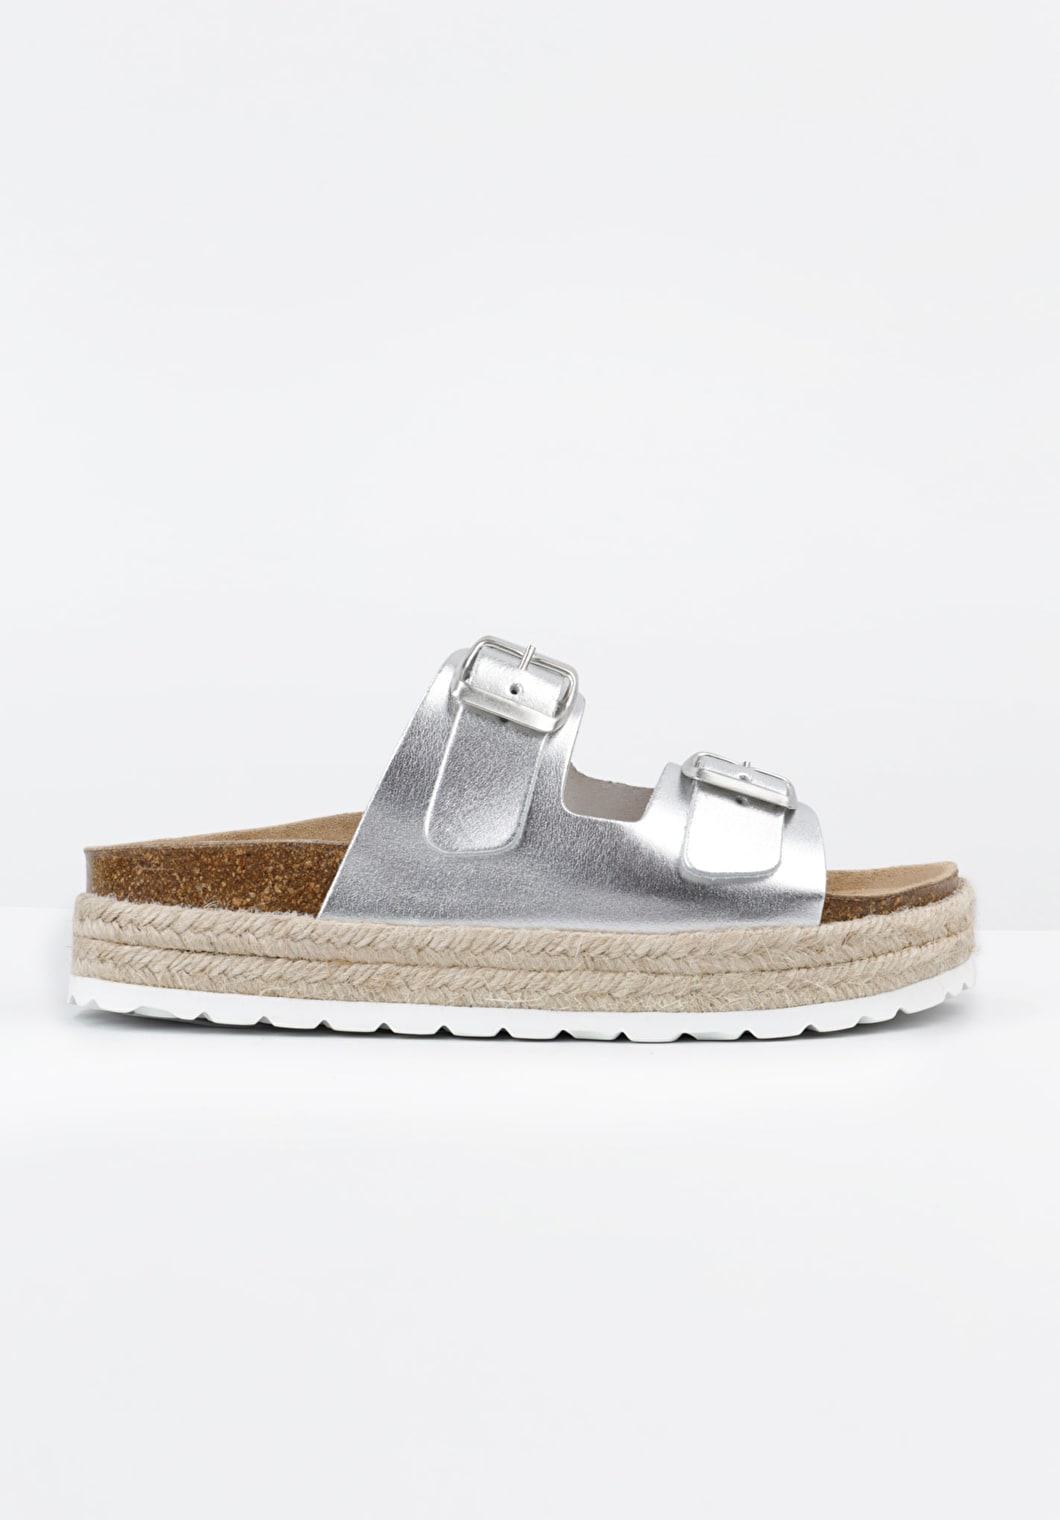 Slider style sandals with a moulded footbed with double buckle fastening in silver